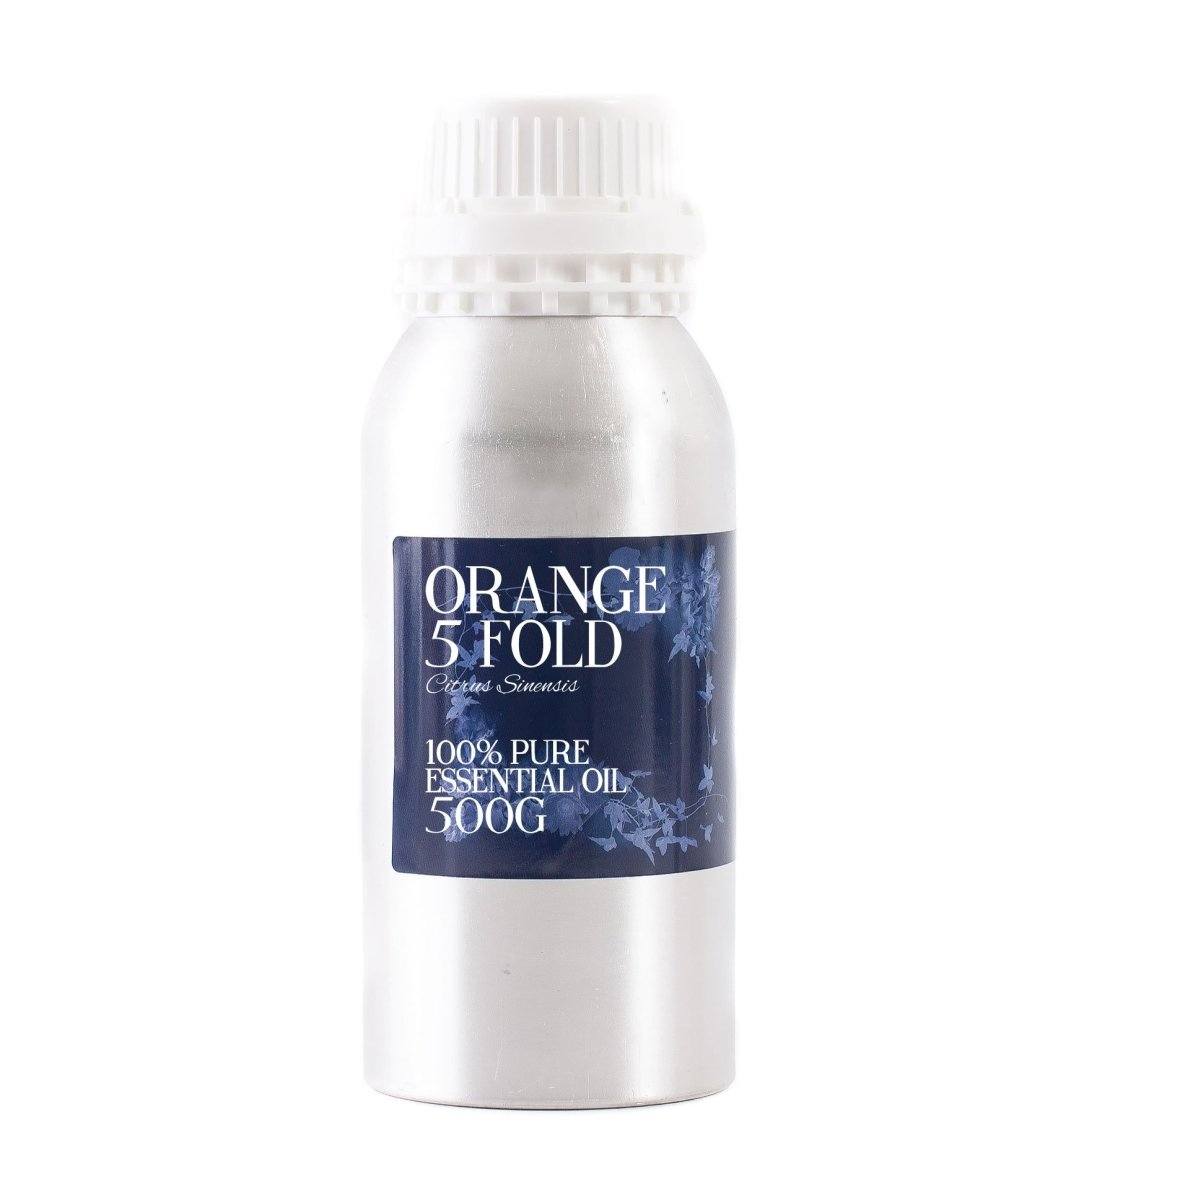 Orange 5 Fold Essential Oil - Mystic Moments UK